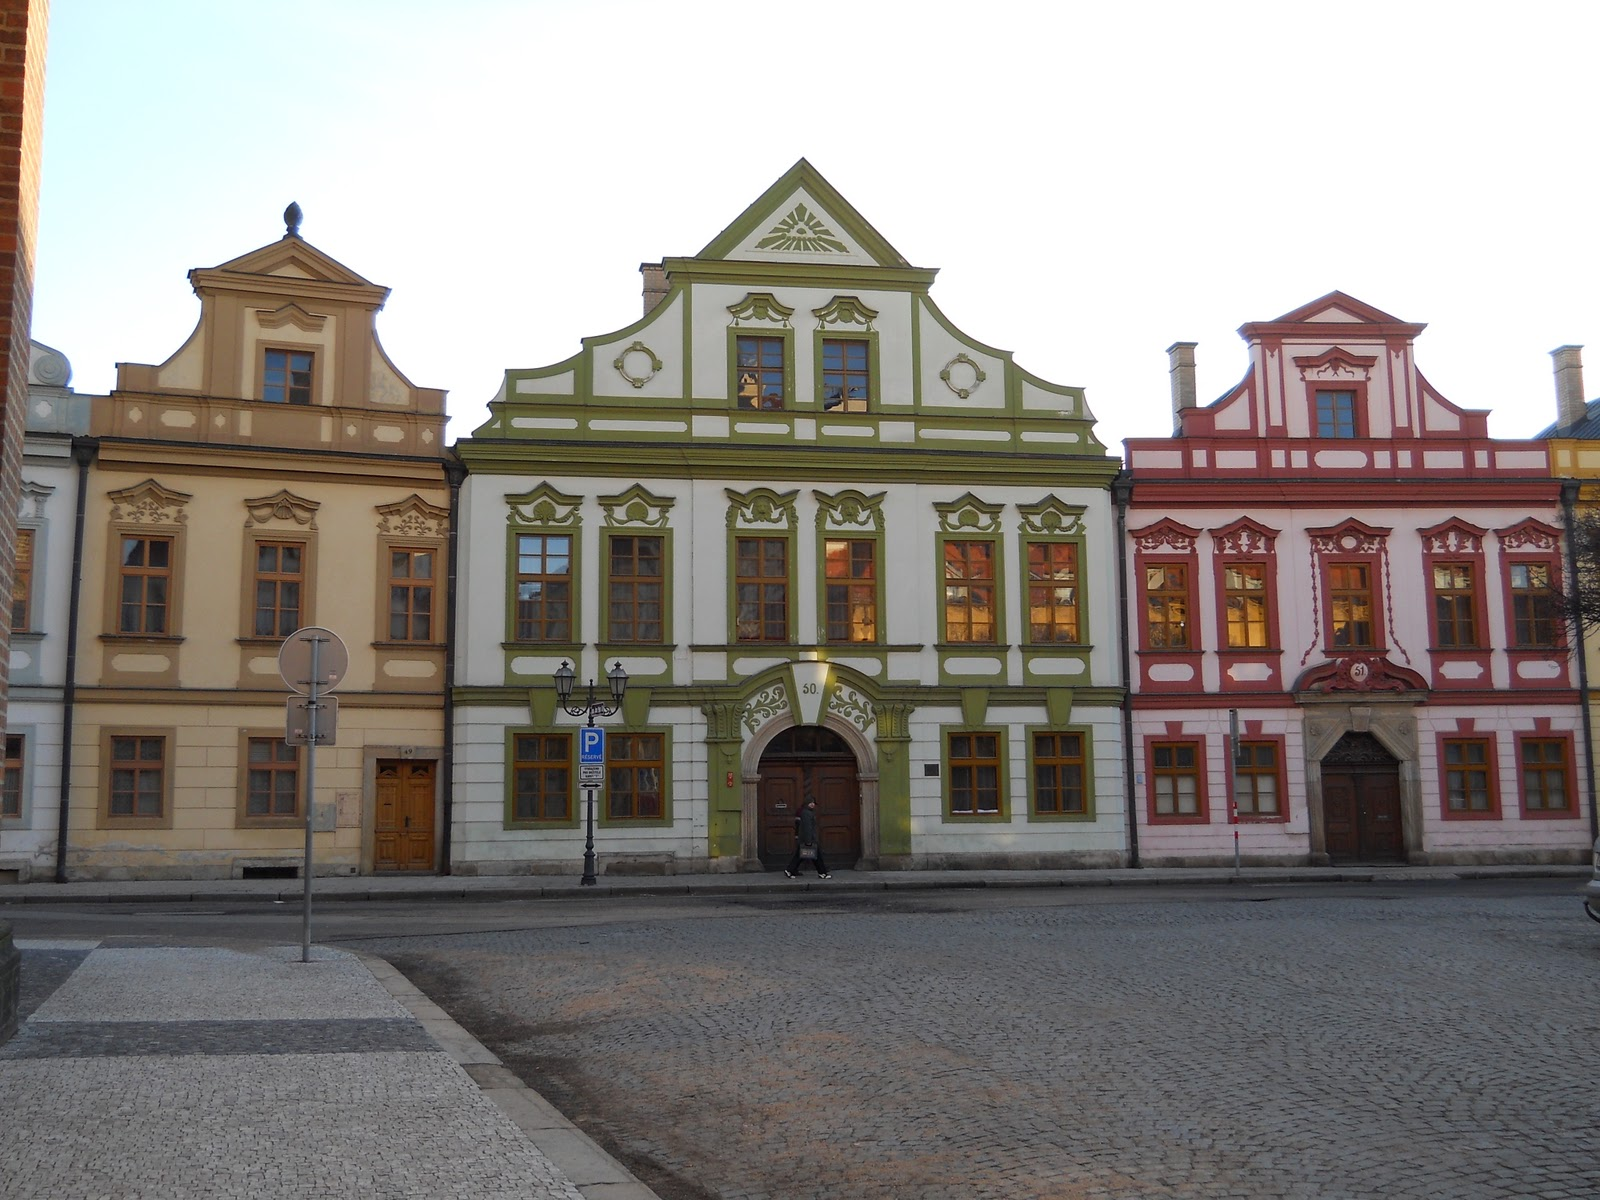 hradec kralove big and beautiful singles Hradec králové, metropolis of the the historical centre of the town is formed by the big square with the the baroque period in hradec is represented by an.